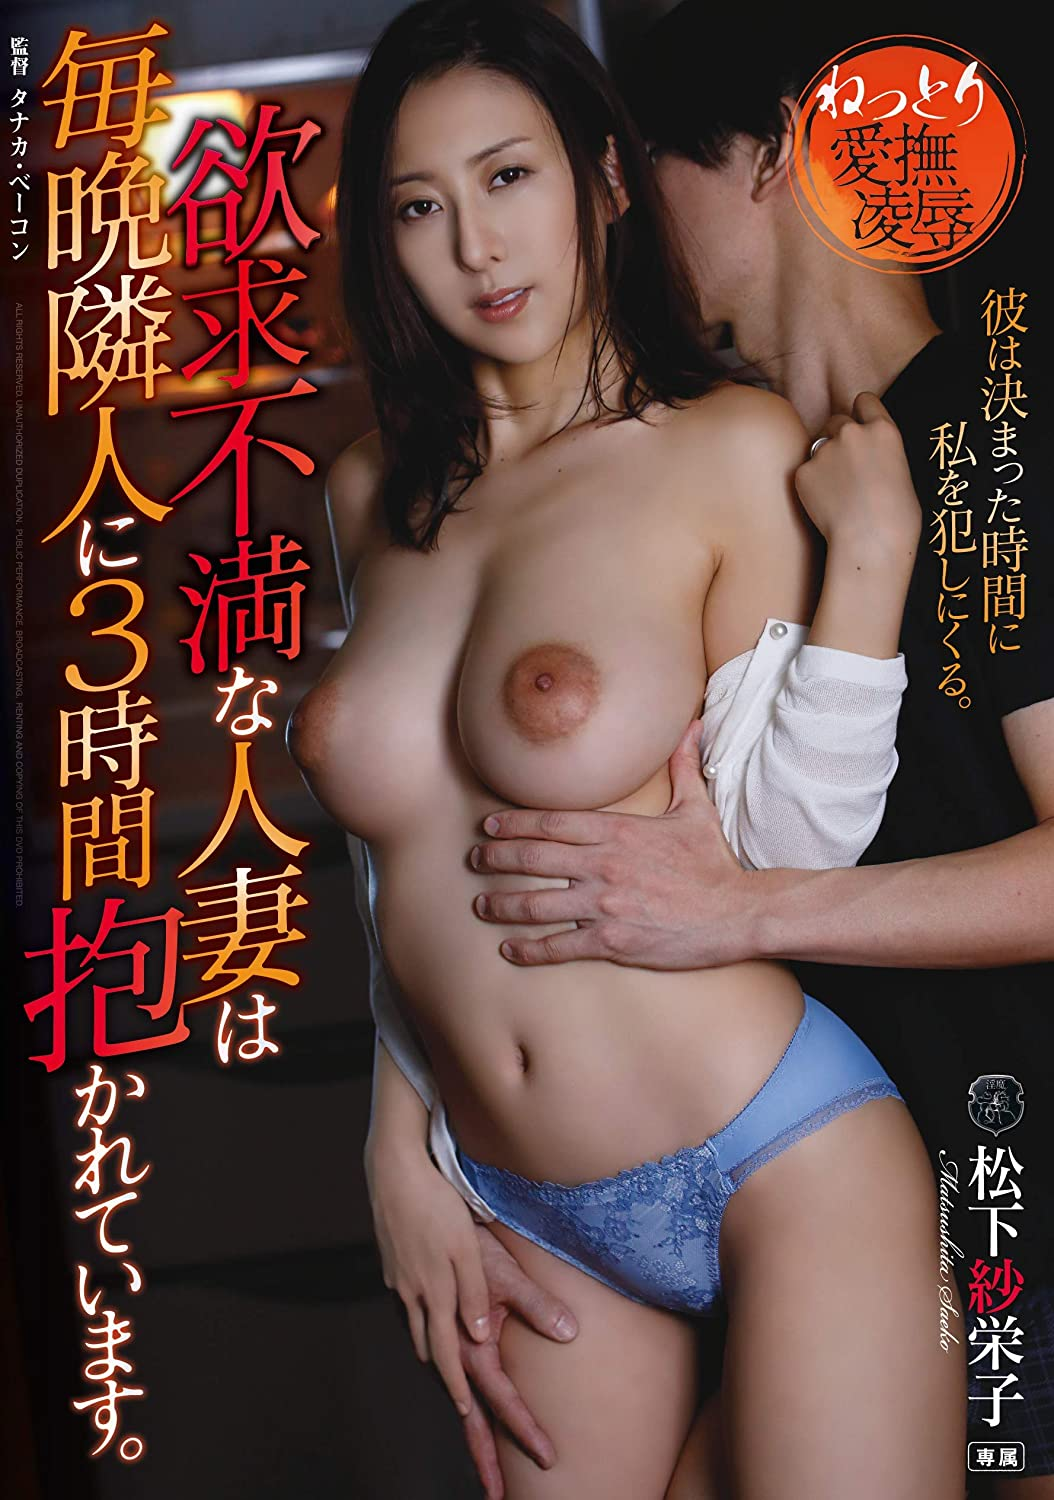 [ATID-401] (English subbed) A Sexually Frustrated Married Woman Gets Fucked For 3 Hours Every Night By Her Next Door Neighbor - Saeko Matsushita